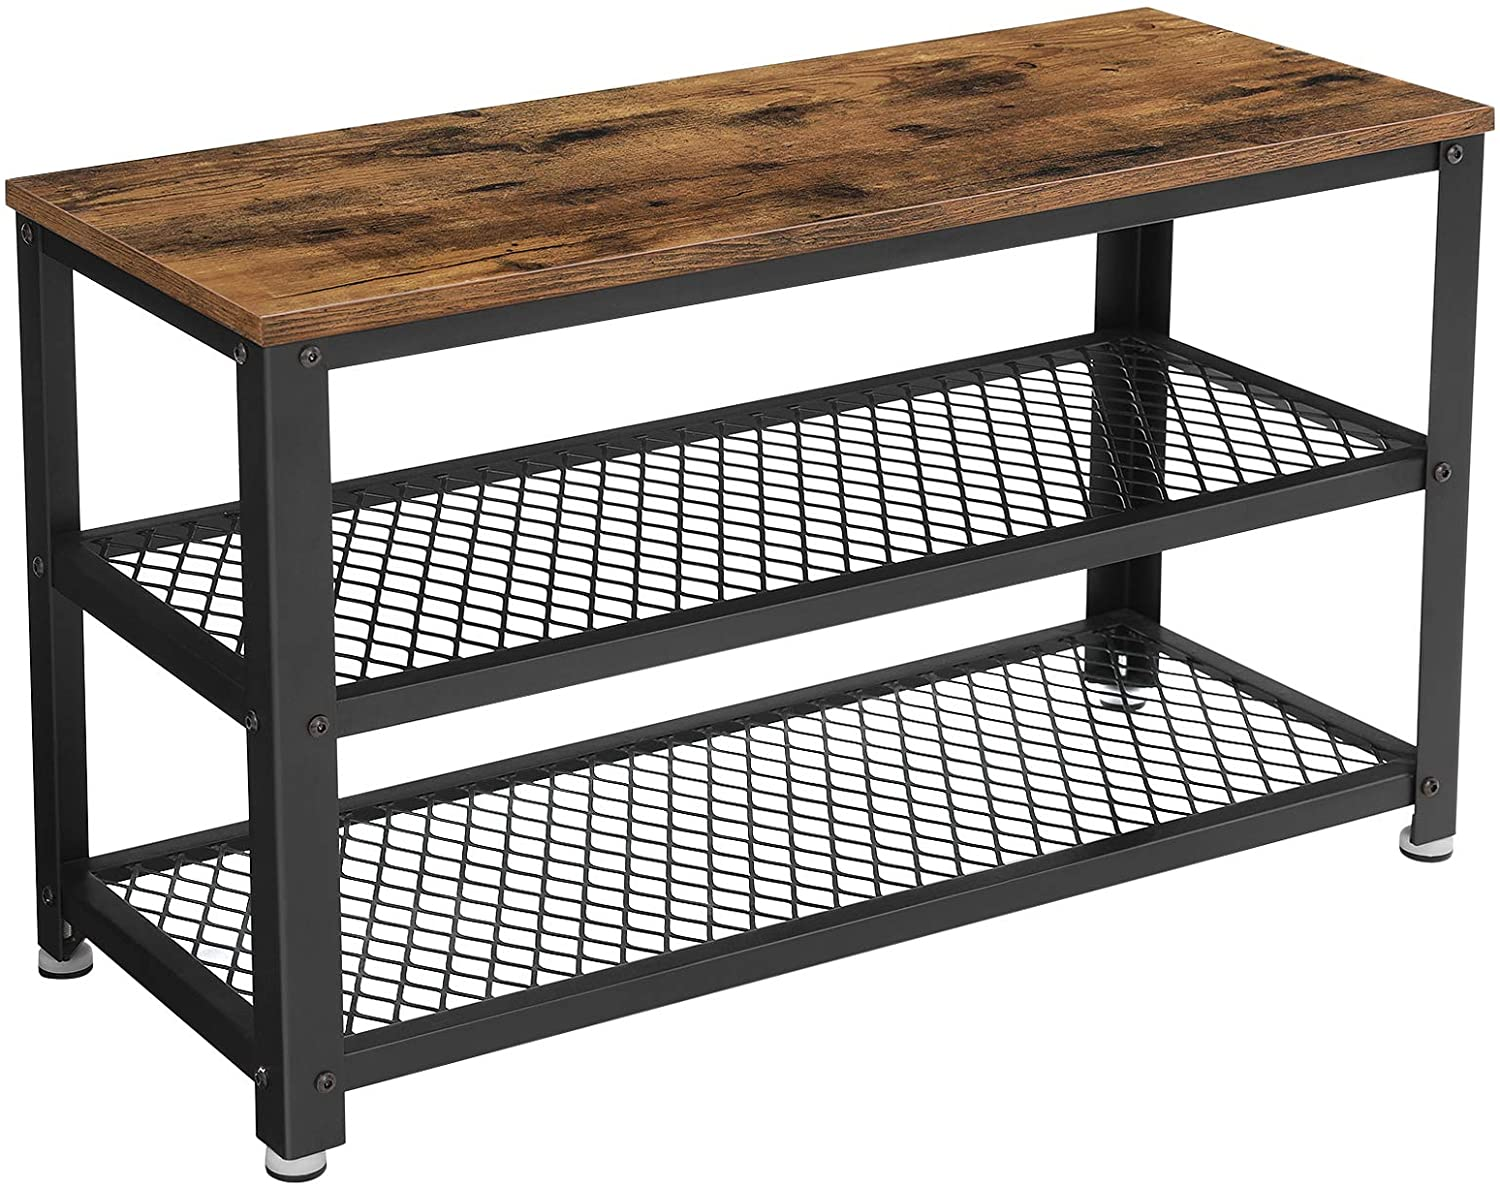 Shop hawkinswoodshop.com for solid wood & metal modern, traditional, contemporary, industrial, custom, rustic, and farmhouse furniture including our Industrial Shoe Bench 3-Tier Entryway Organizer.  Enjoy free nationwide shipping, help with the fight against hunger in the US, and support a family owned and operated business that helps puts food on the table for folks in rural Northern California.